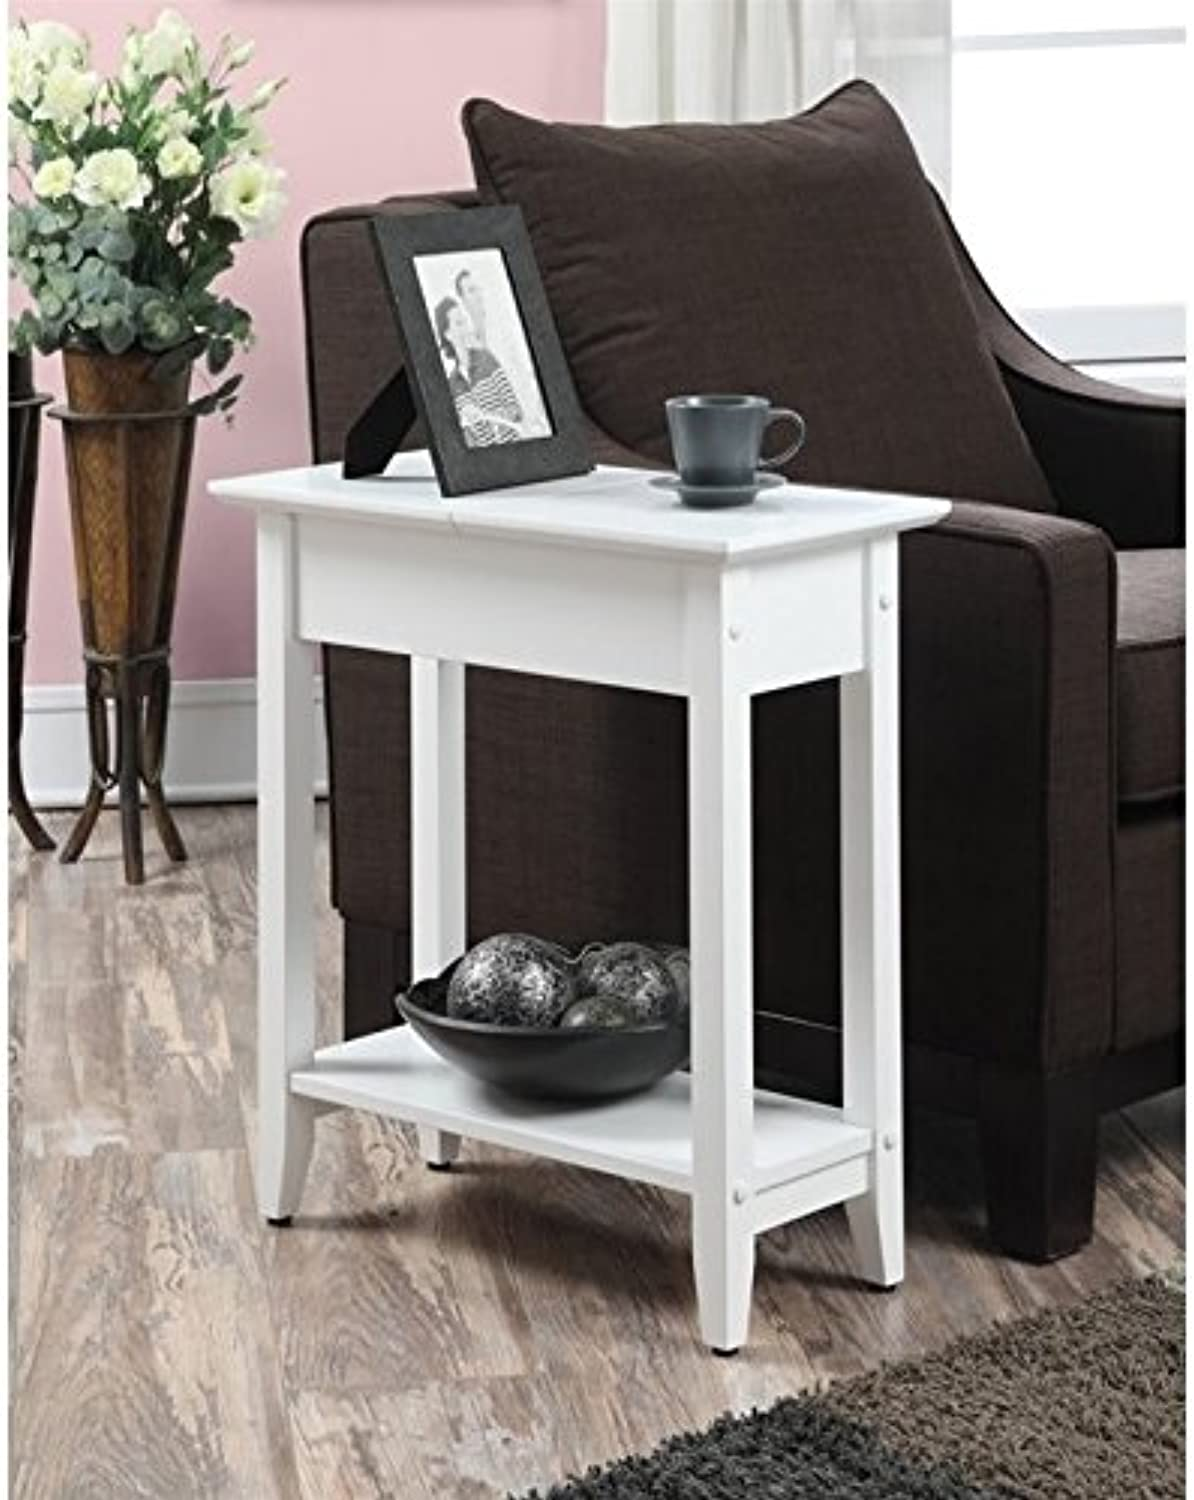 Pemberly Row Flip Top End Table in White